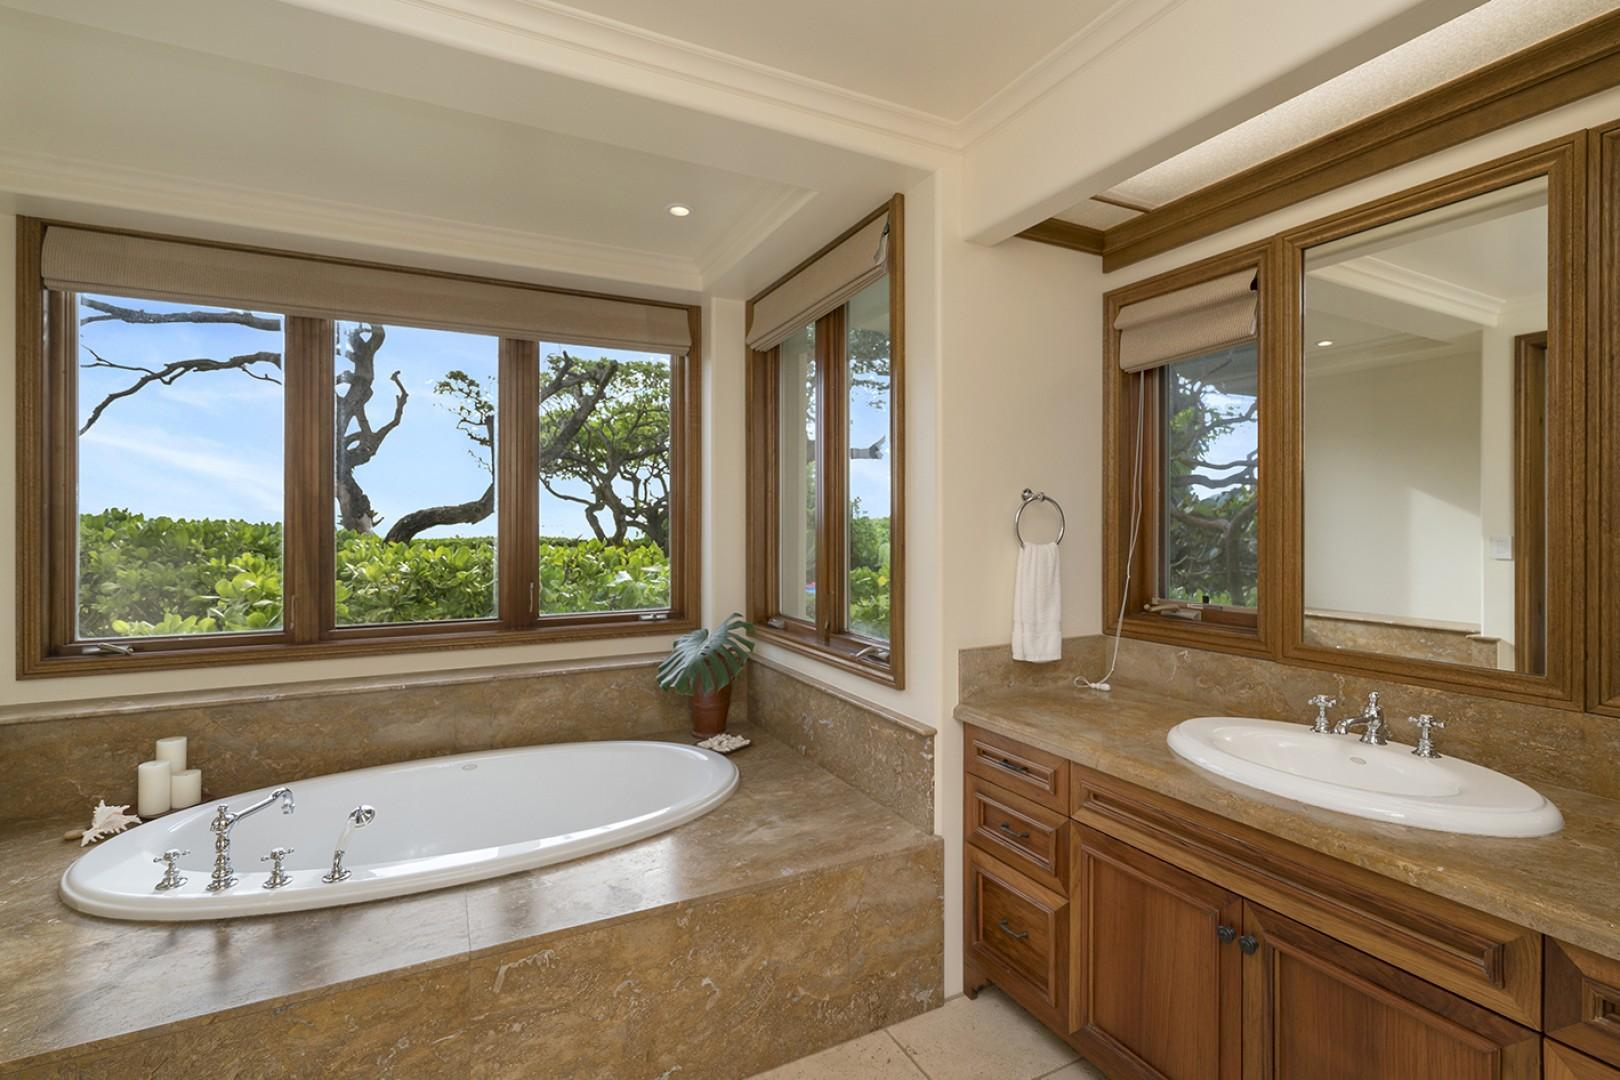 Main house: Guest Bedroom 2 ensuite with jetted tub and walk in shower.